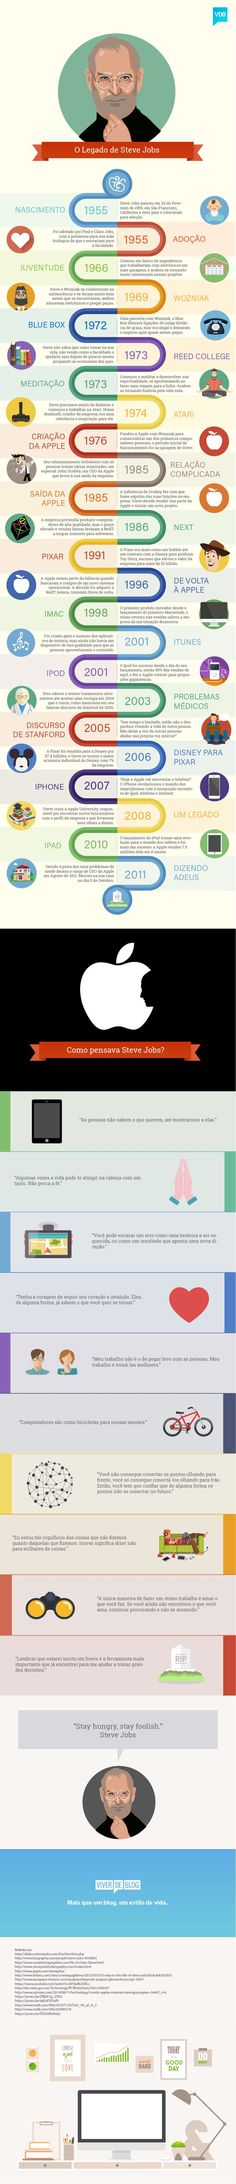 [Infográfico] Steve Jobs E O Legado Que Mudou O Mundo. If you like UX, design, or design thinking, check out theuxblog.com